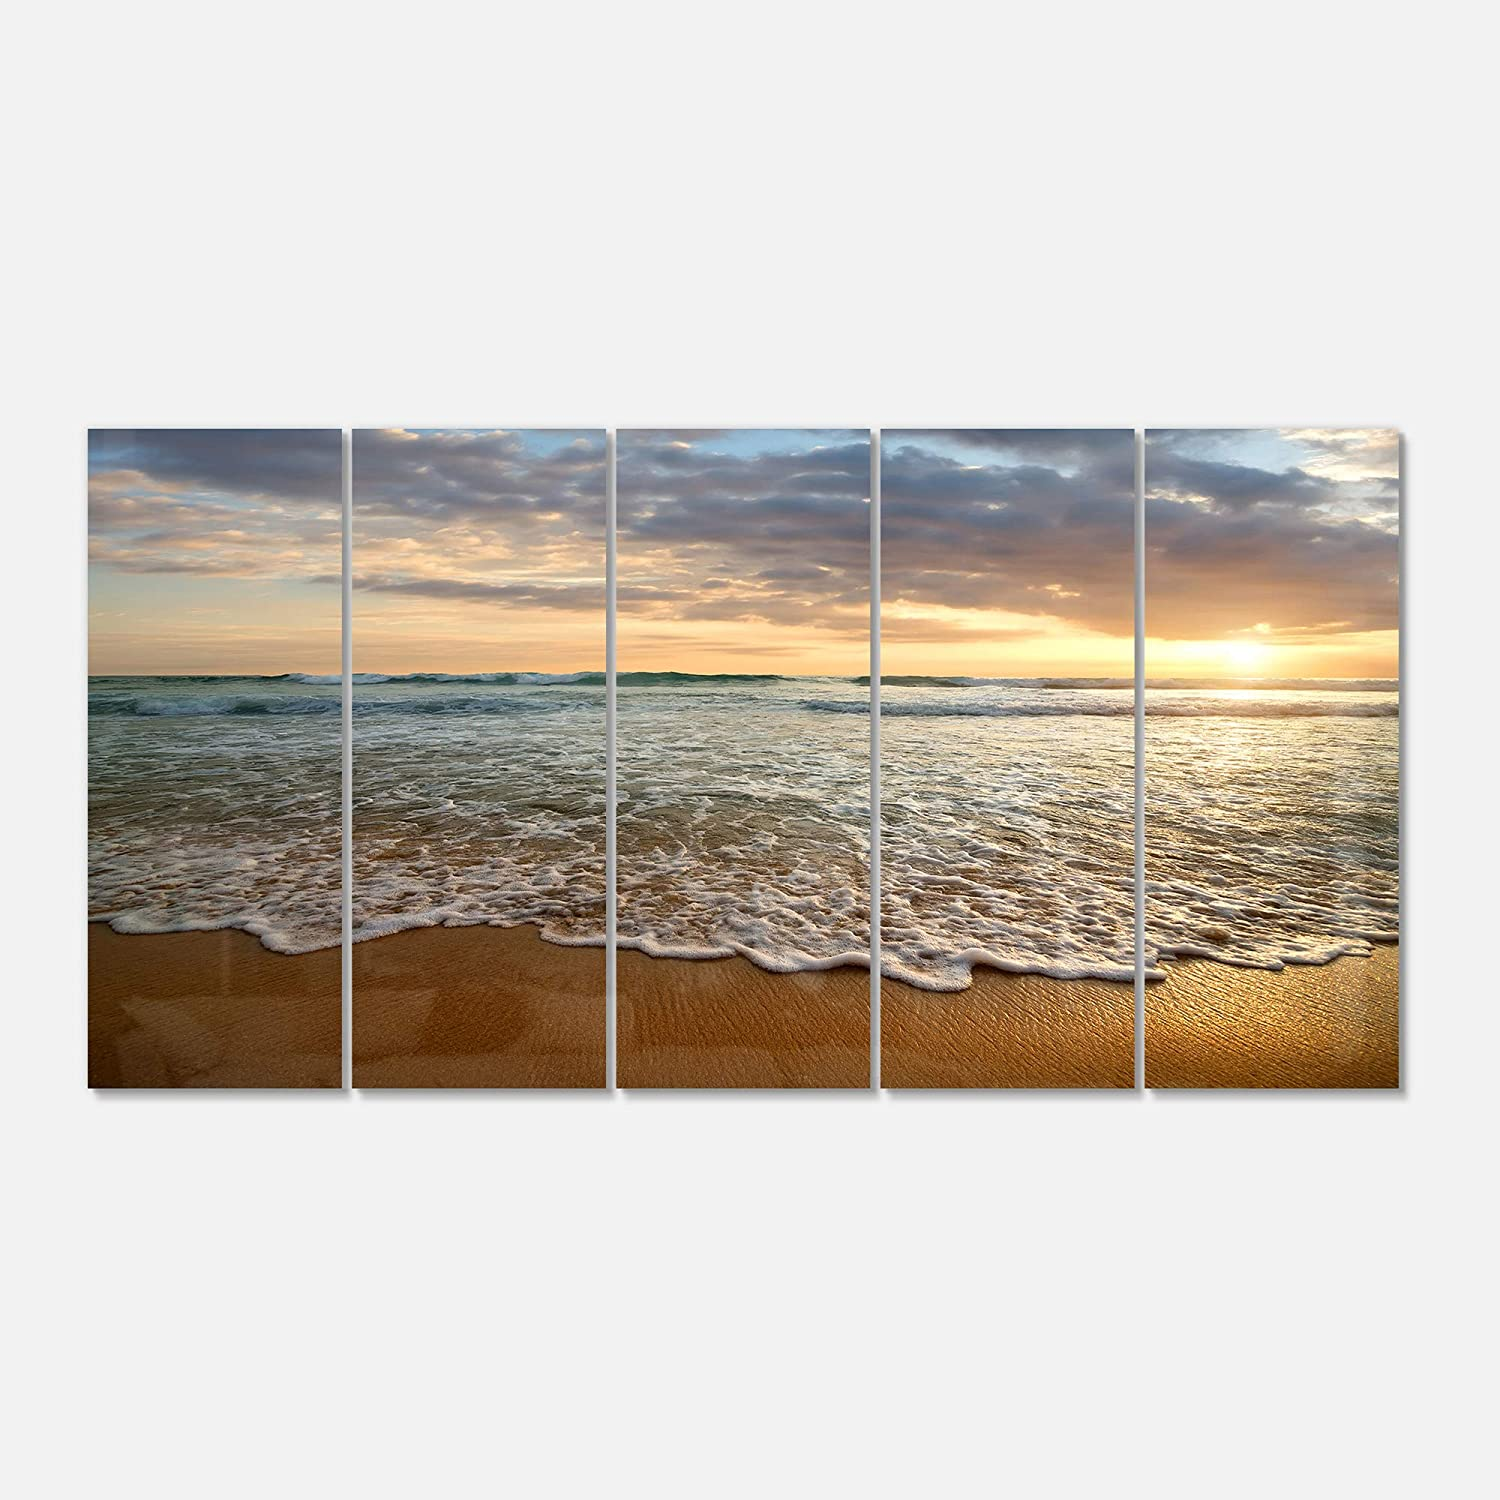 60 x 28 60 x 28 Design Art Blue//White Designart MT10728-401 Metal Wall Art